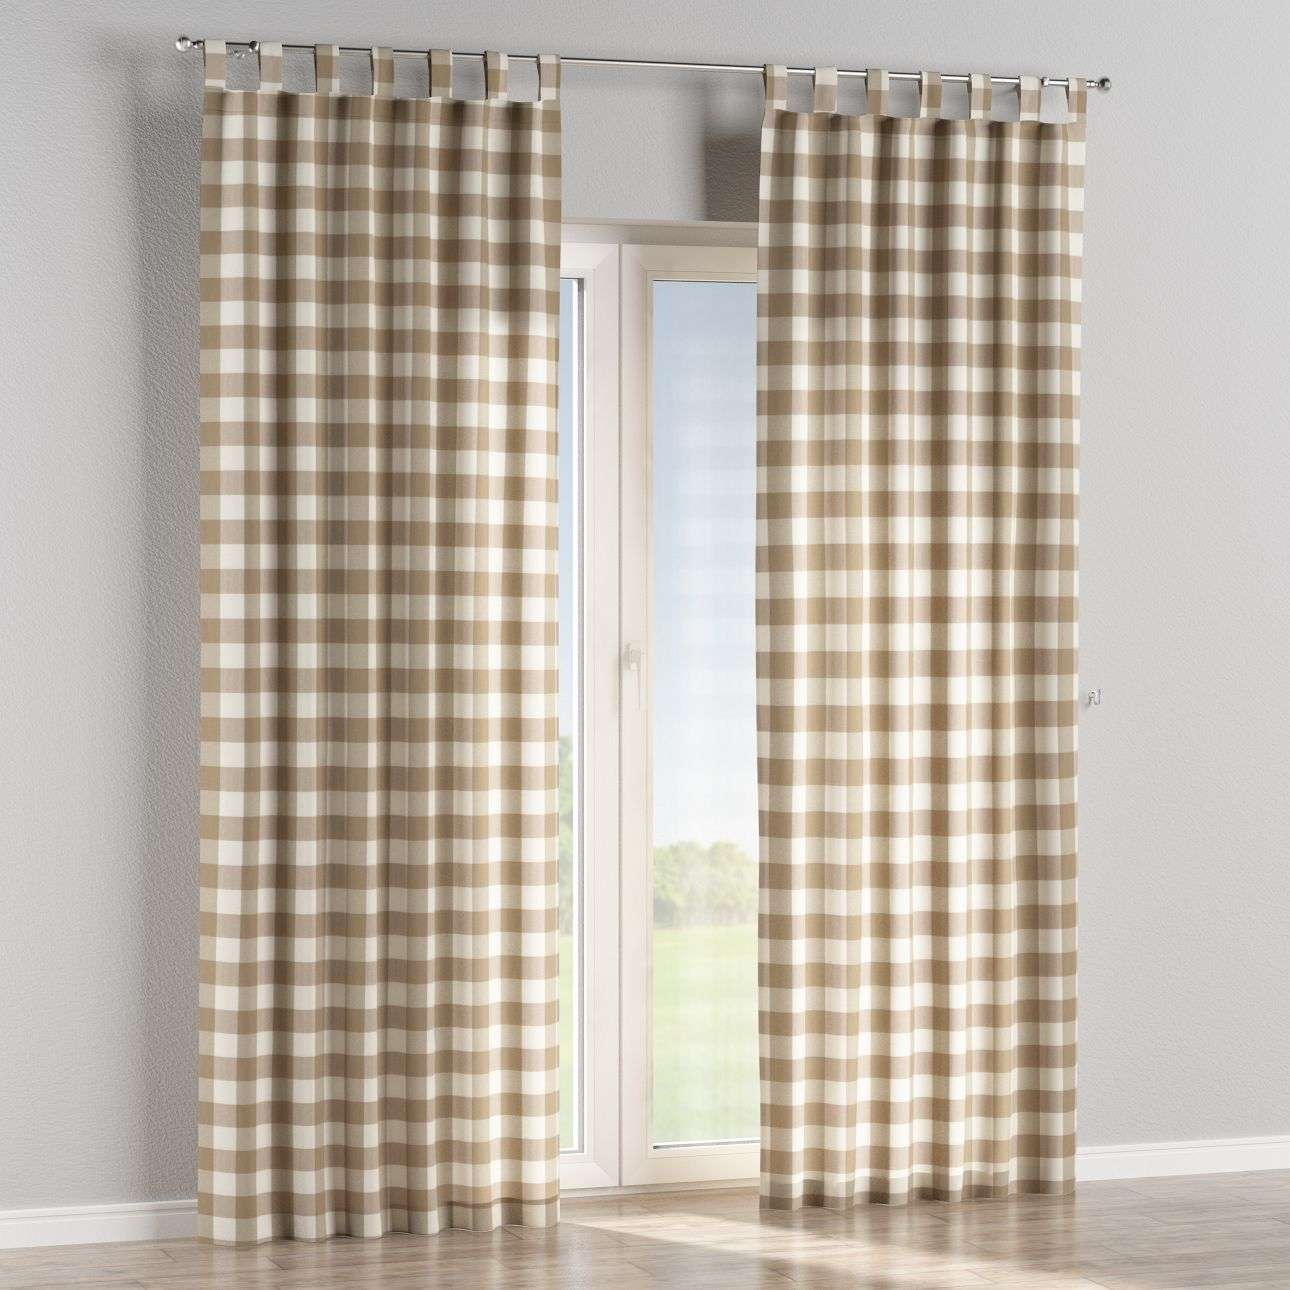 Tab top curtains in collection Quadro, fabric: 136-08